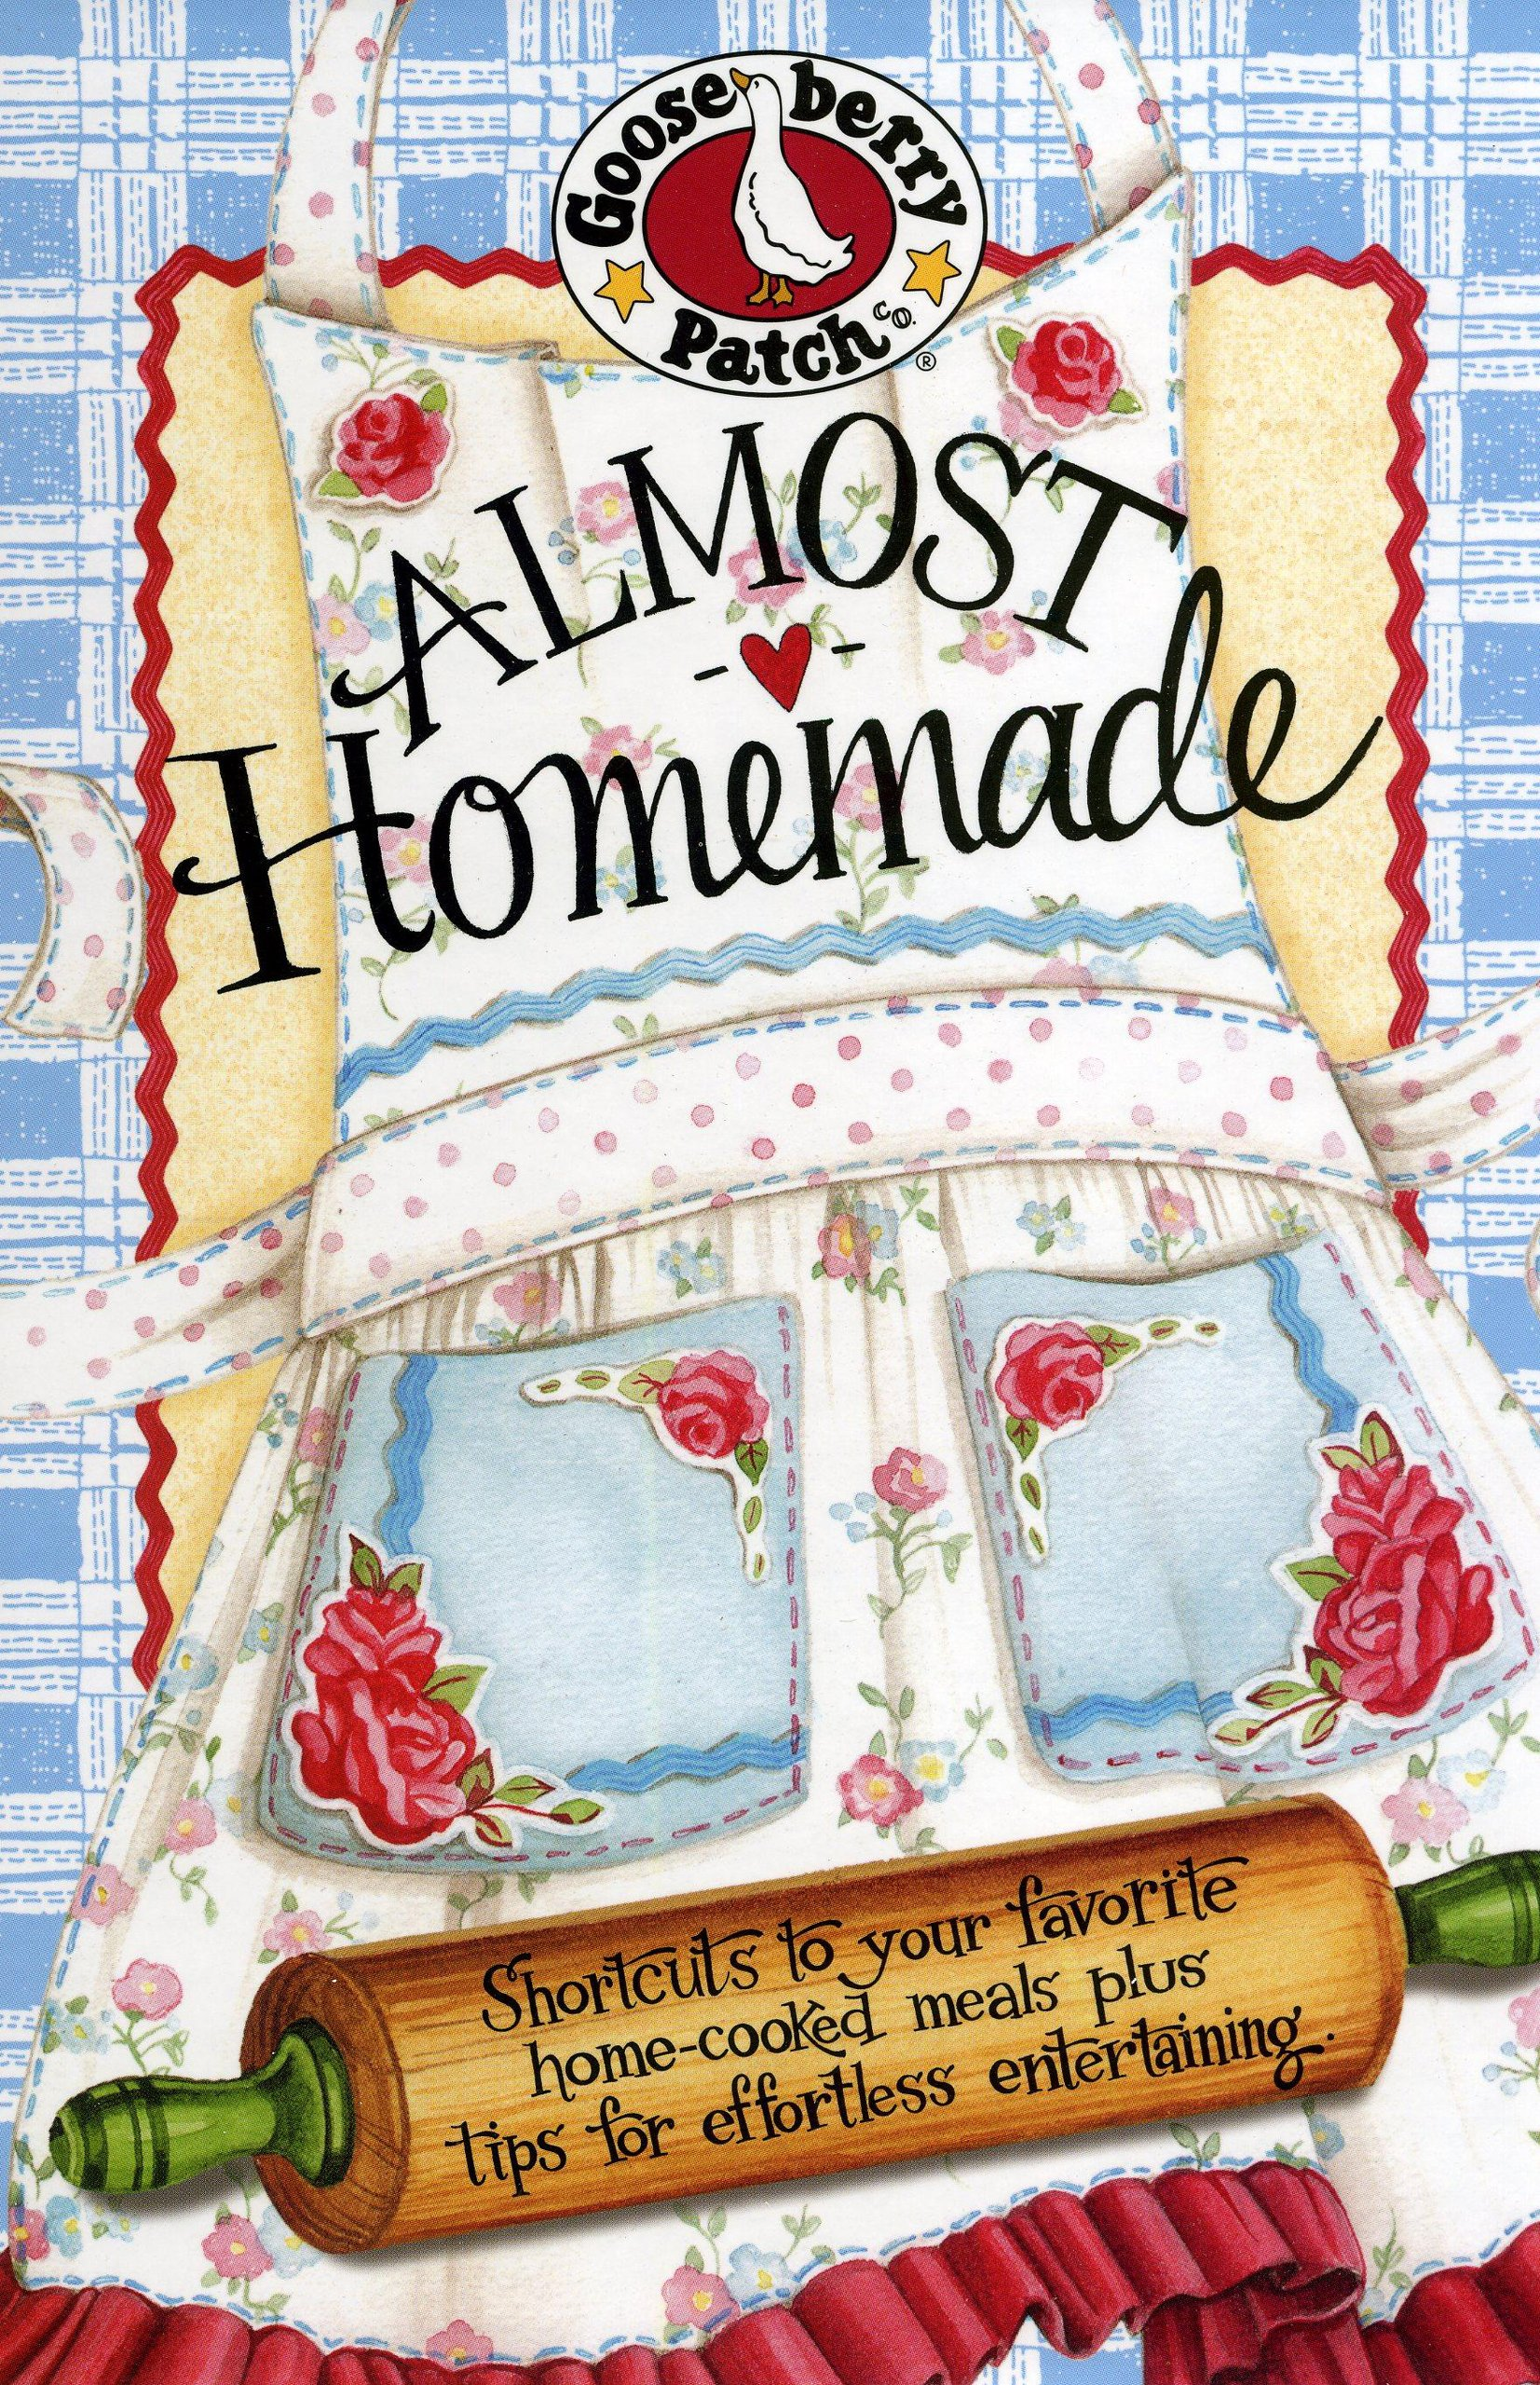 Homemade Book Cover Ideas ~ Homemade cookbook cover ideas pixshark images